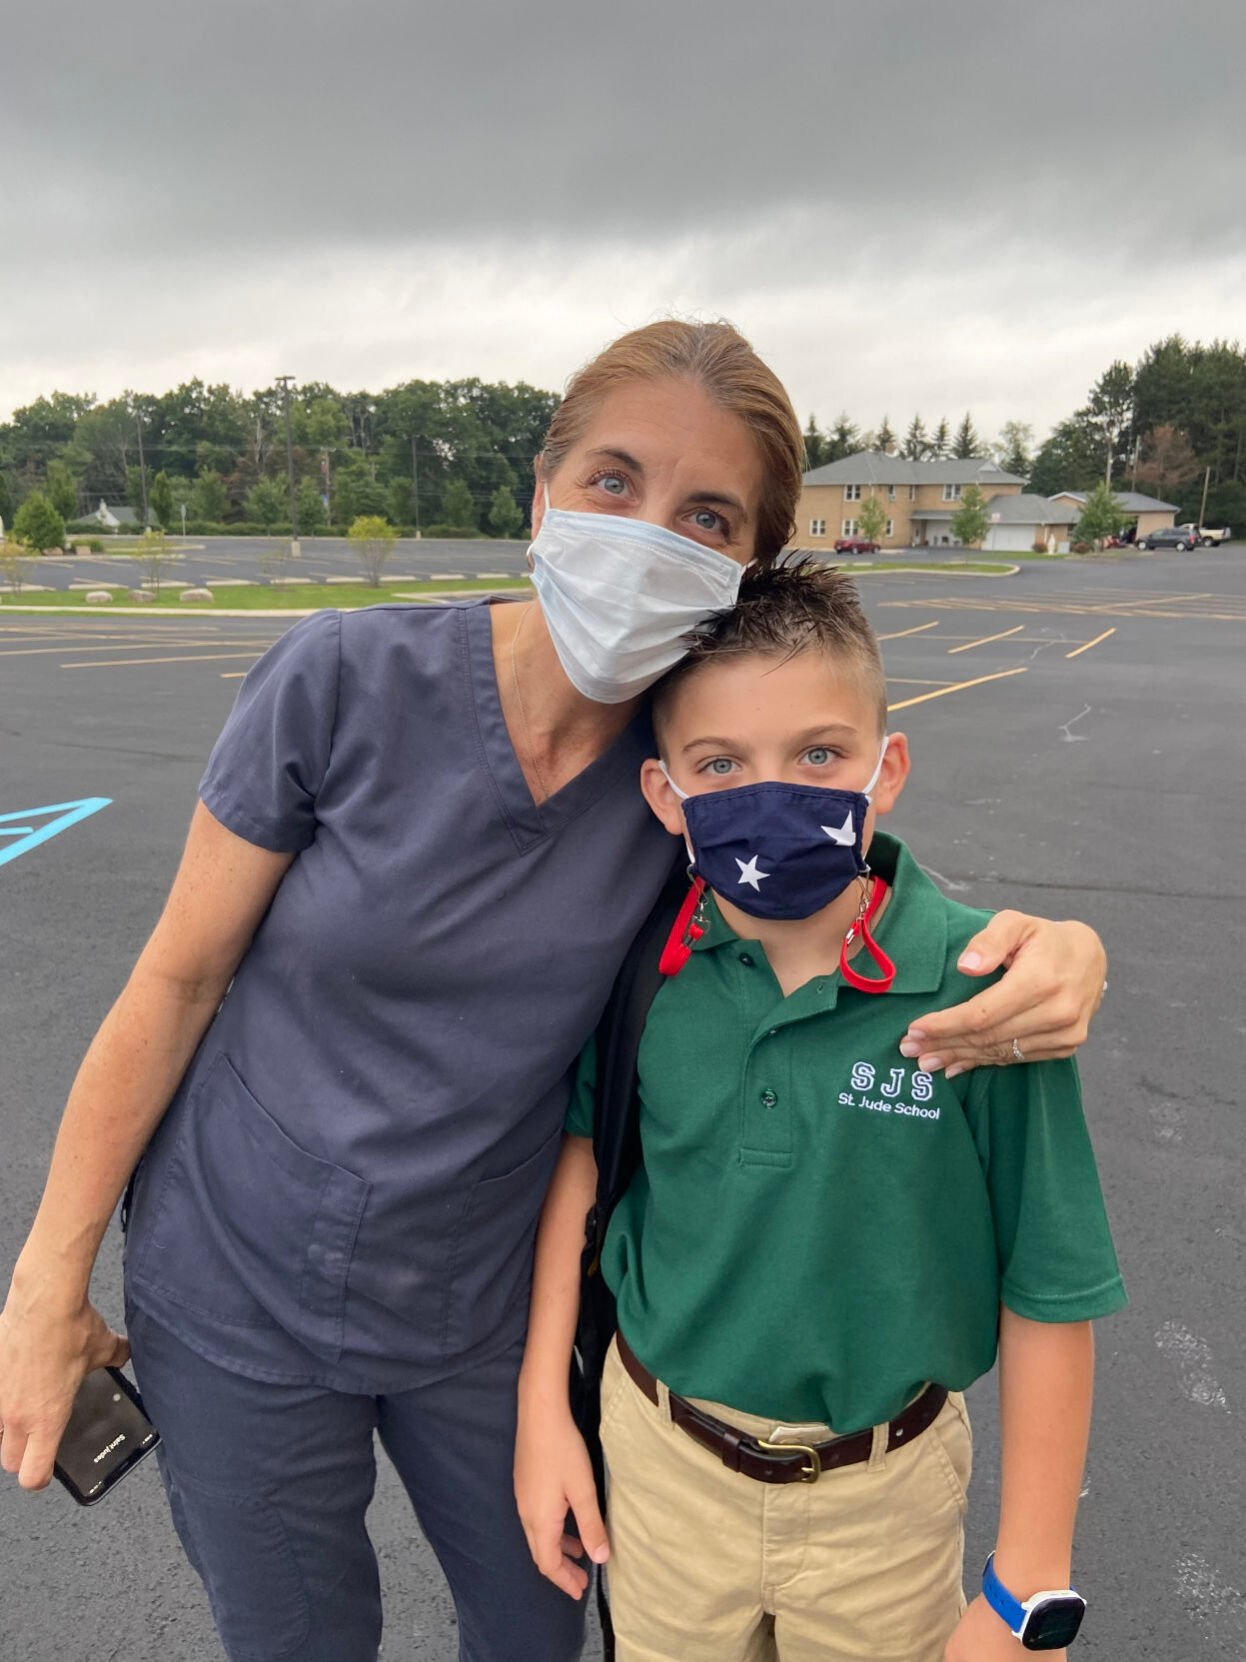 St. Jude School welcomes students to new school year